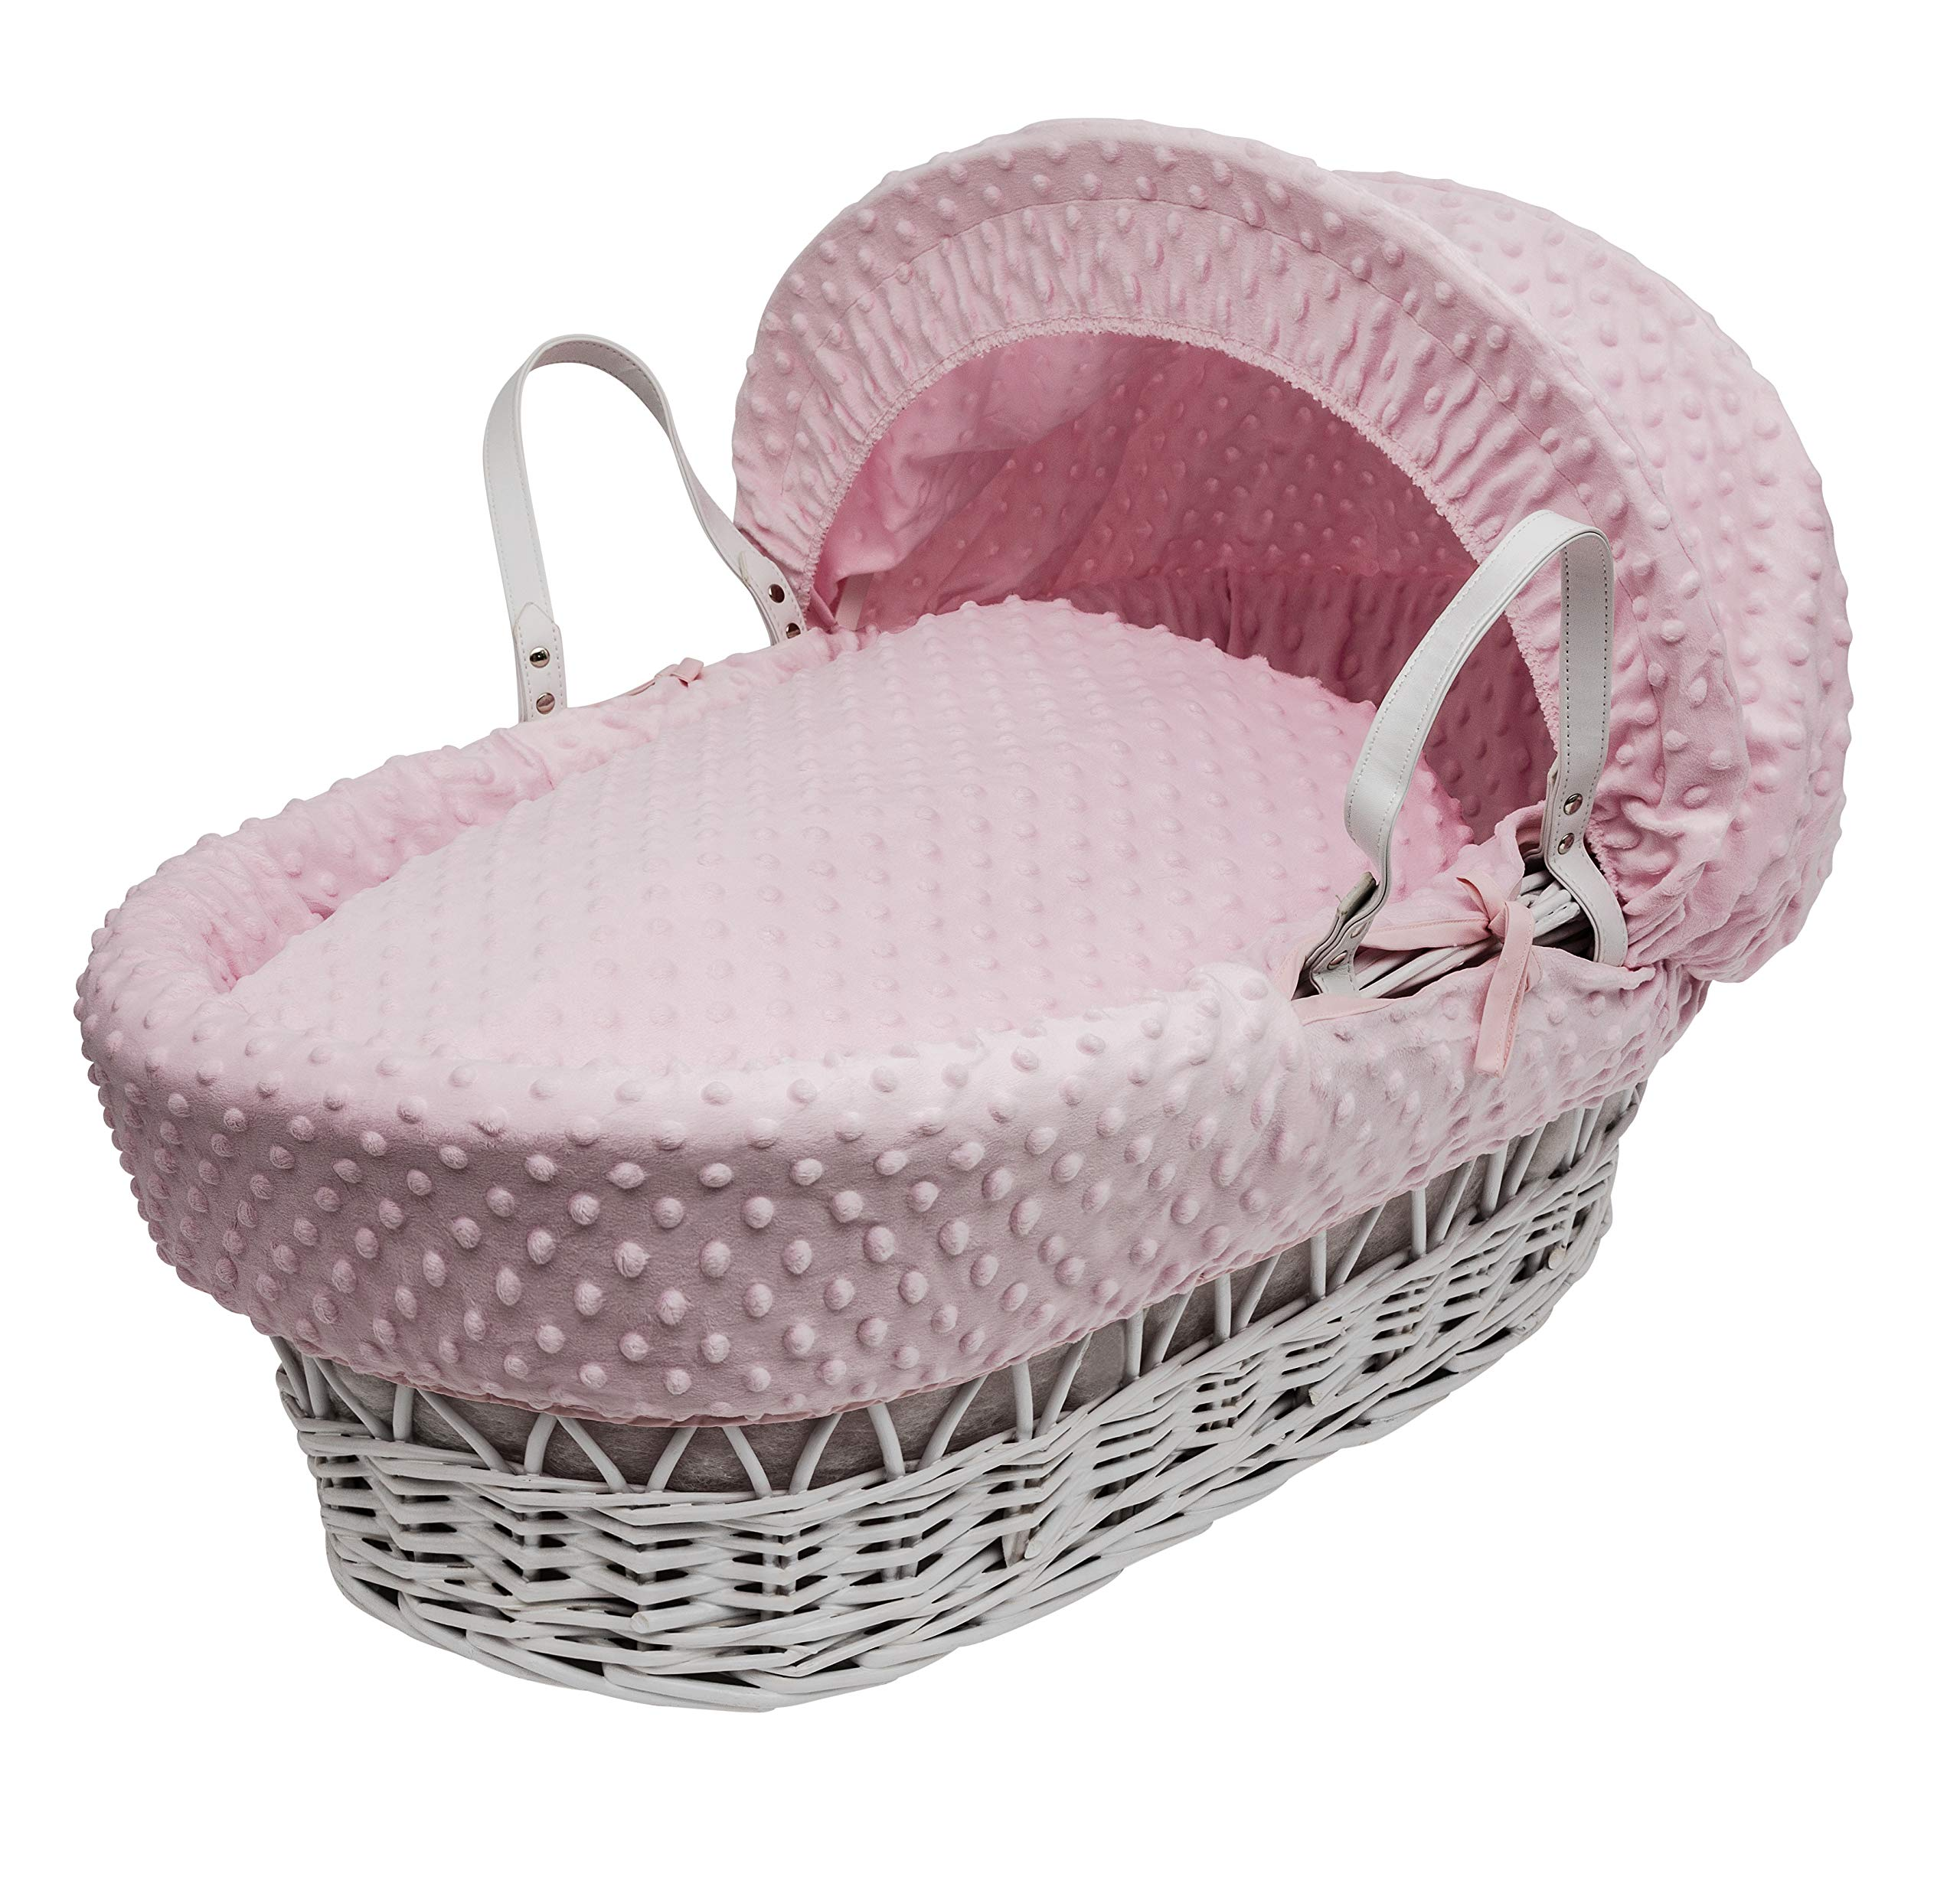 Pink Dimple Moses Basket Dressings only(Basket not included) Elegant Baby Dressings For Moses Baskets Includes Padding,Quilt, Liner,Fabric Hood Basket and Mattress and Hood bars are NOT included 1